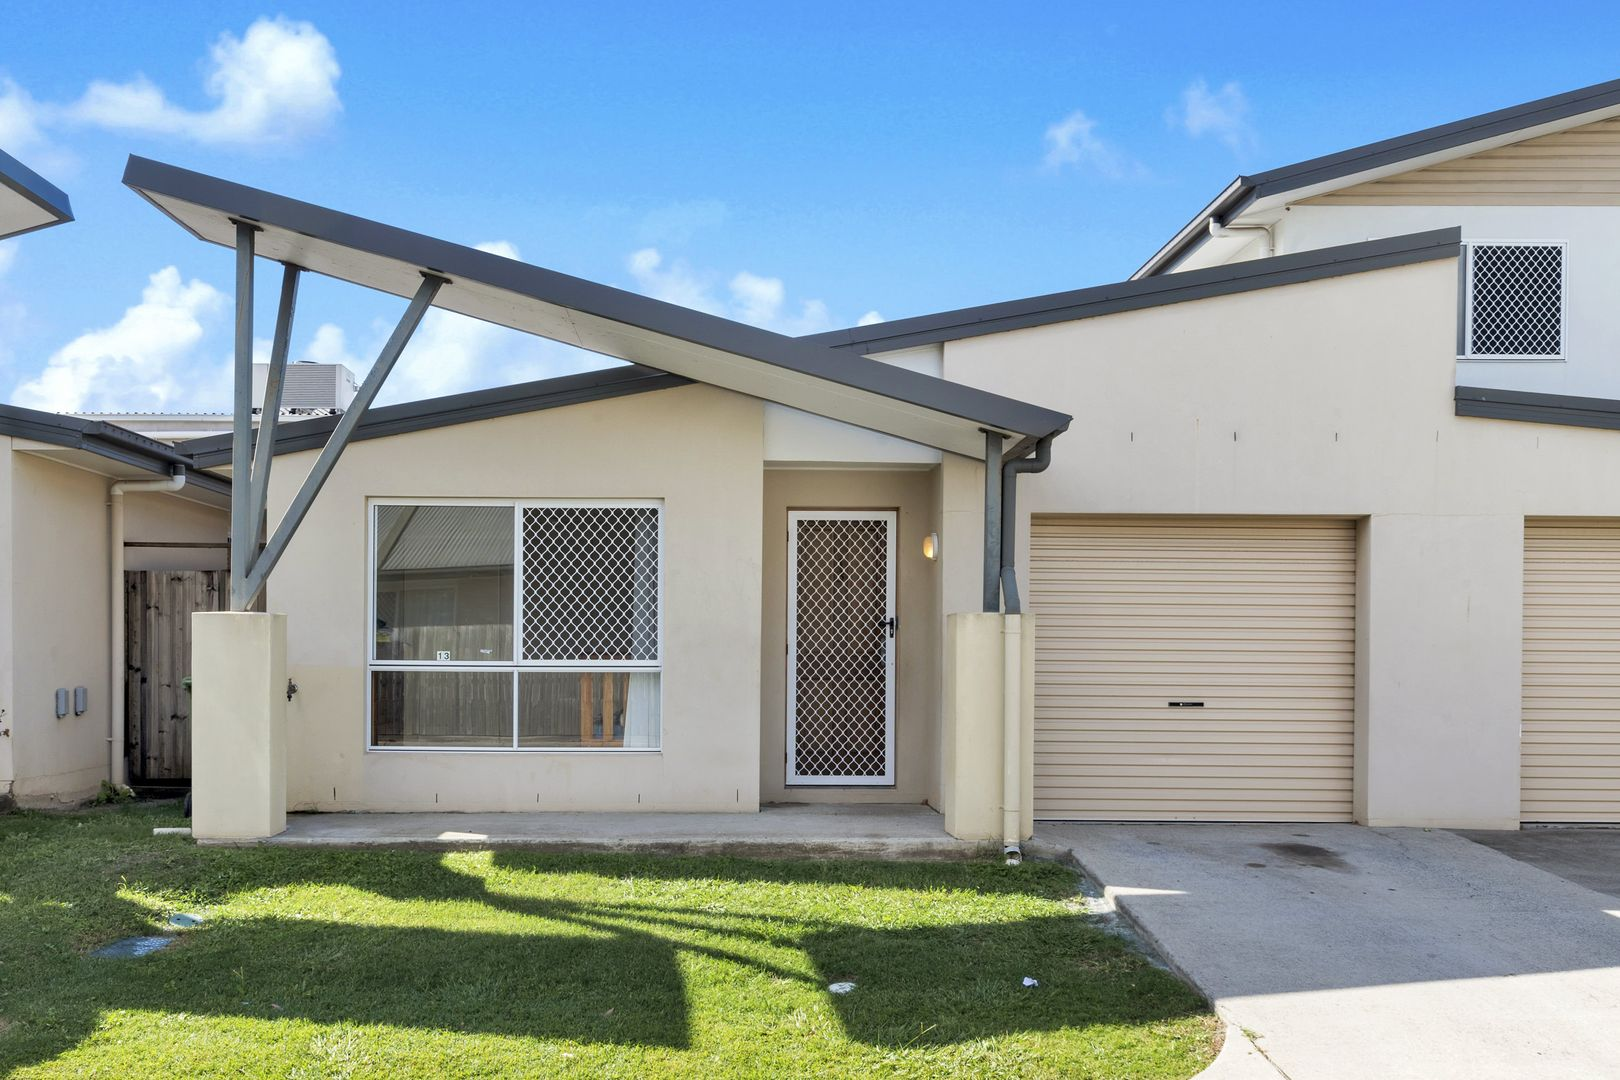 13/35 Kenneth st - Blue Water Moray, Morayfield QLD 4506, Image 0